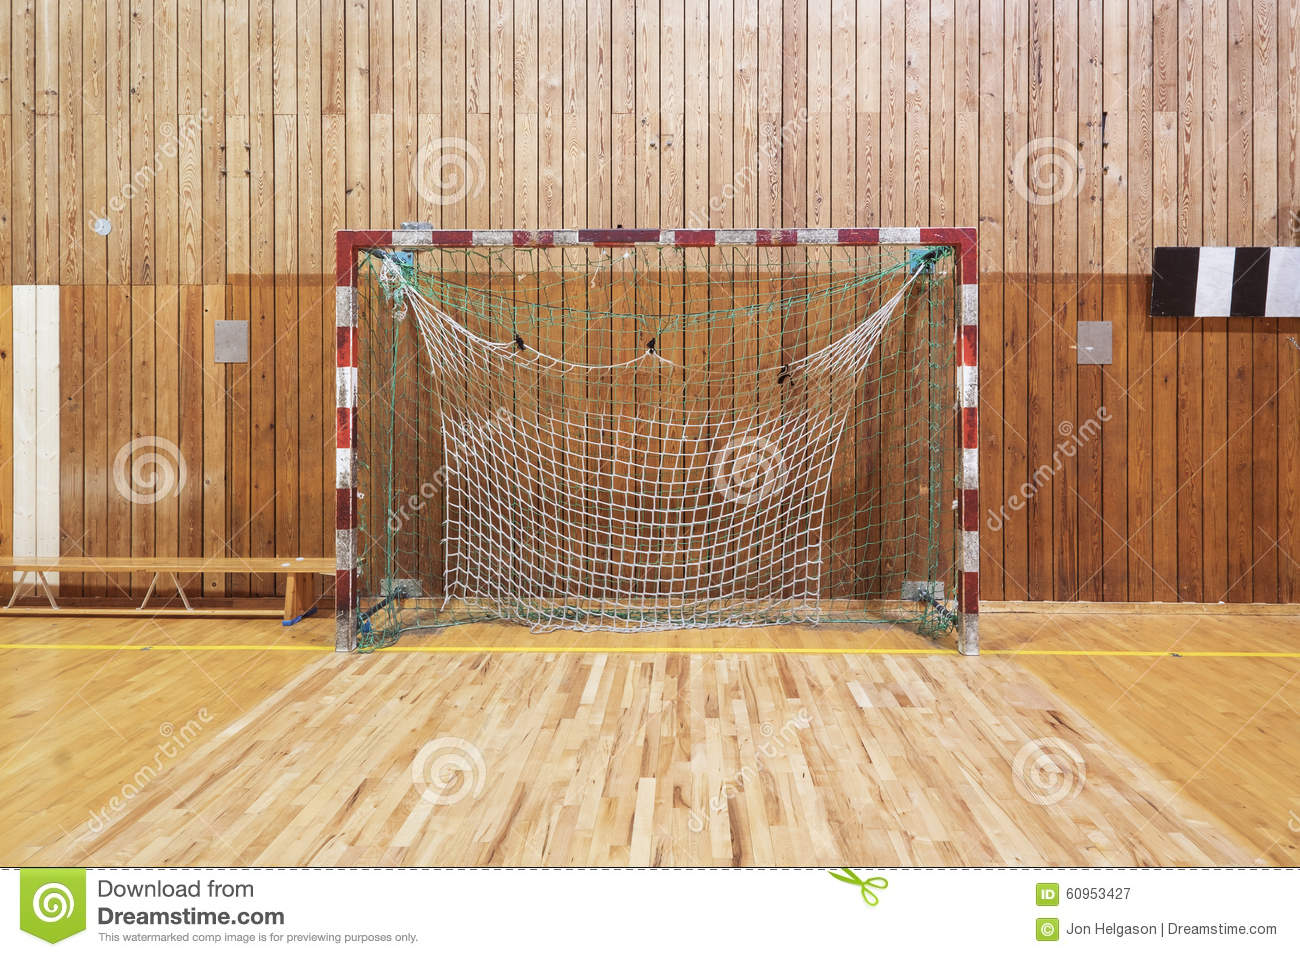 Retro indoor soccer goal stock image. Image of empty - 60953427